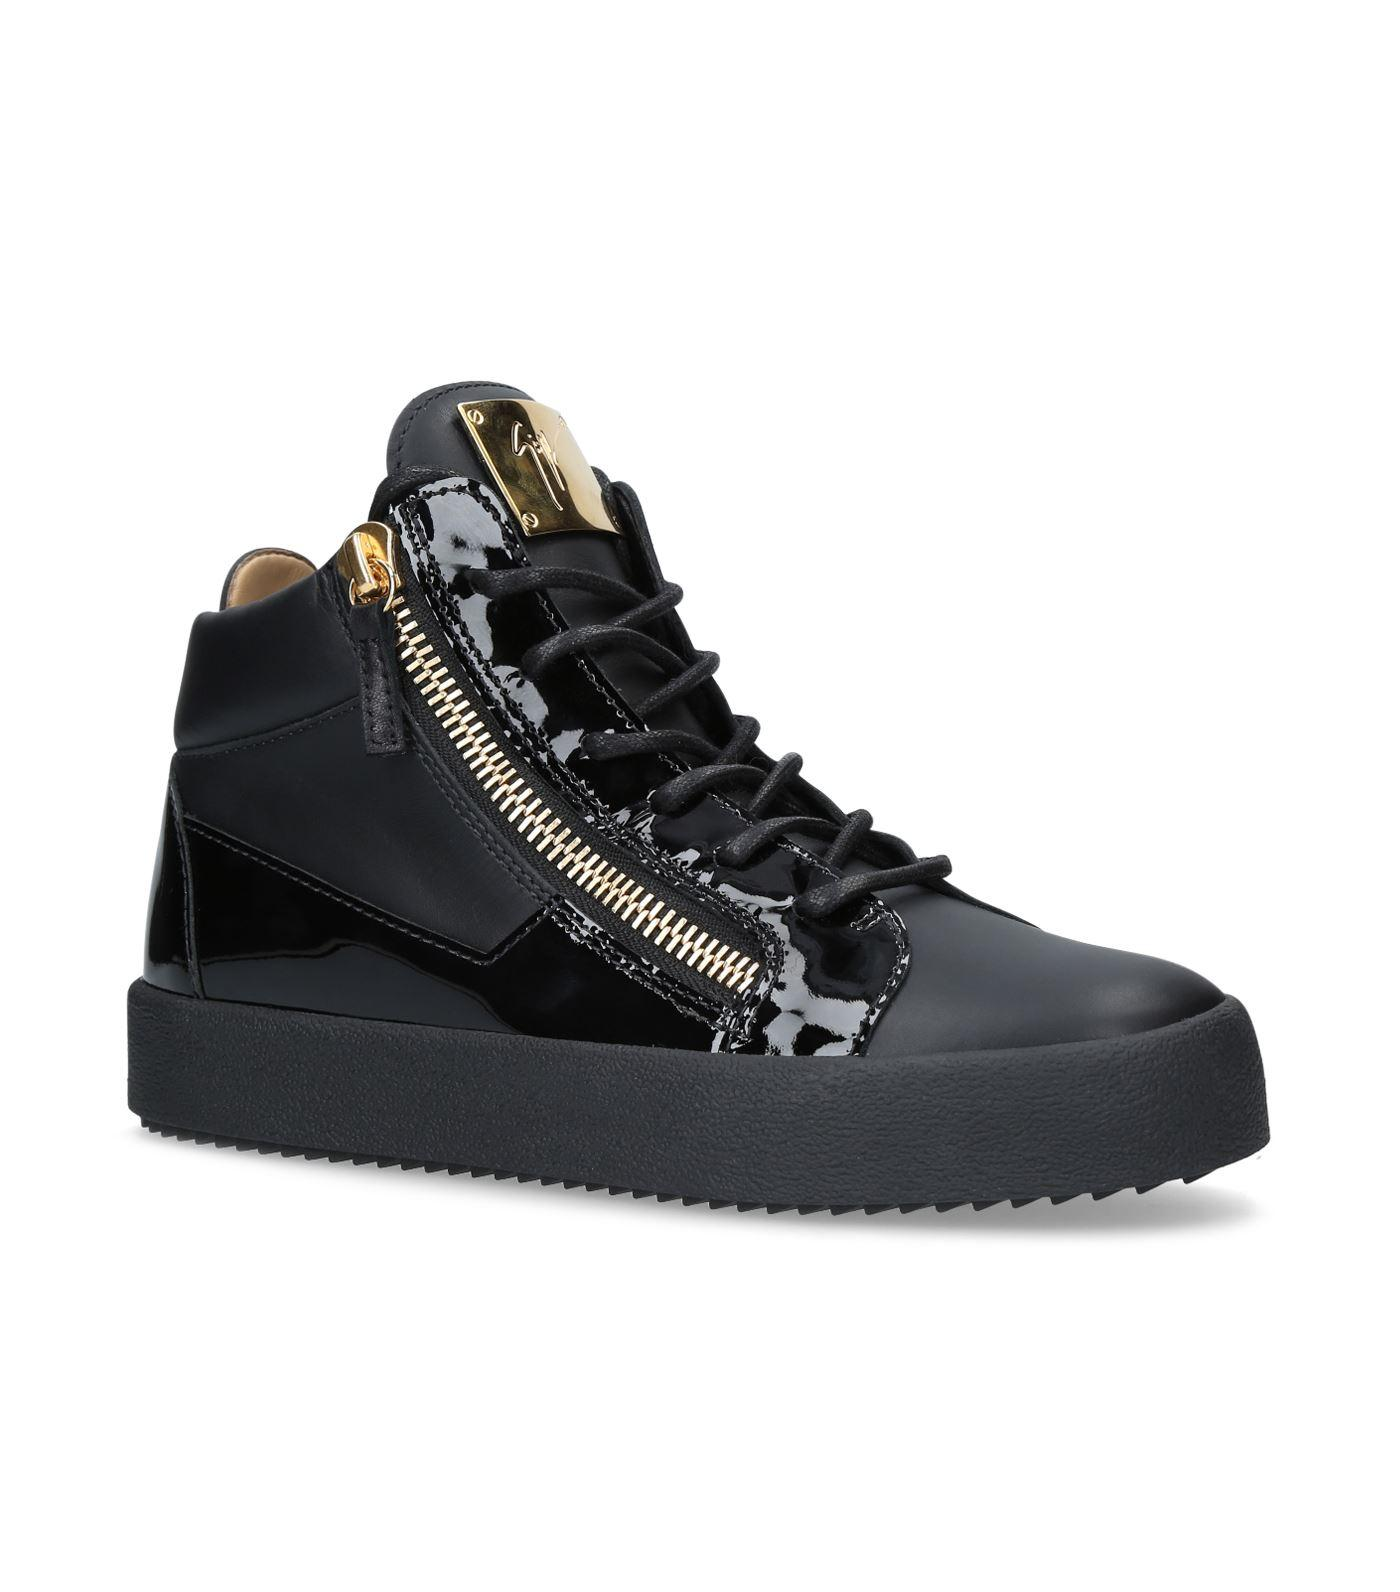 5750a0c7542c1 Lyst - Giuseppe Zanotti Patent Mix Mid Top Sneakers in Black